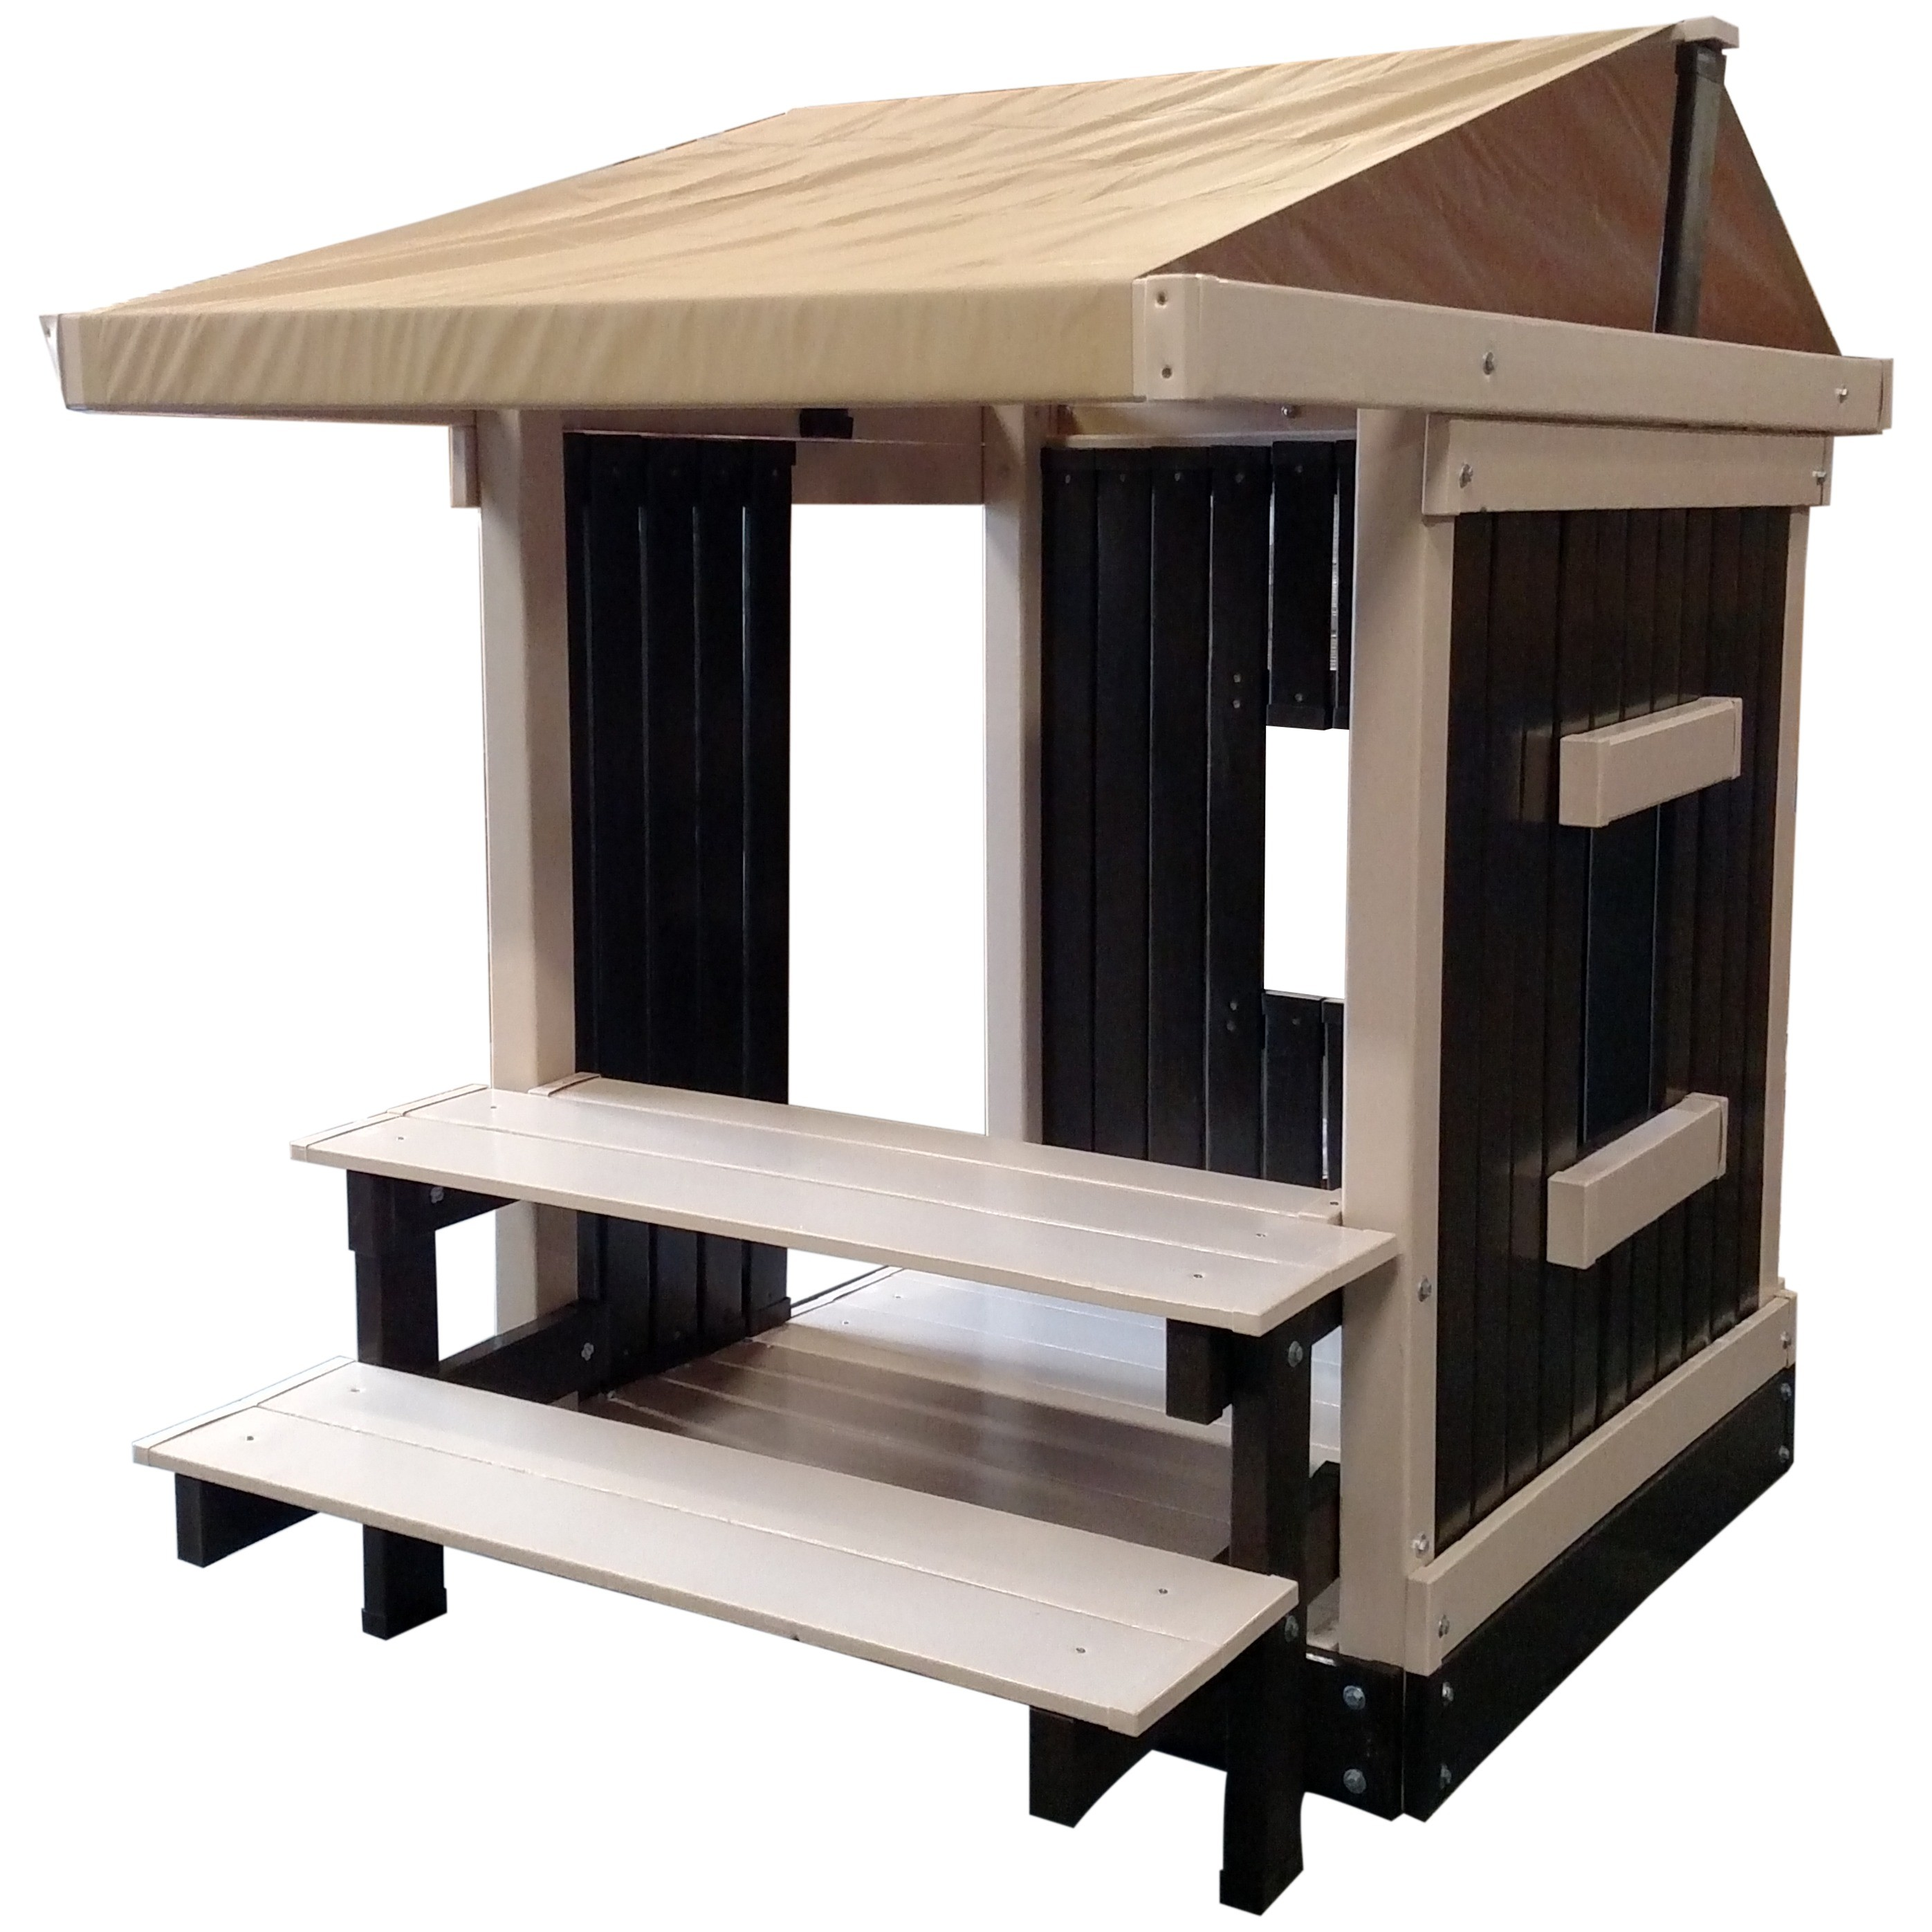 CONGO Clubhouse With Picnic Table - Ready to assemble picnic table